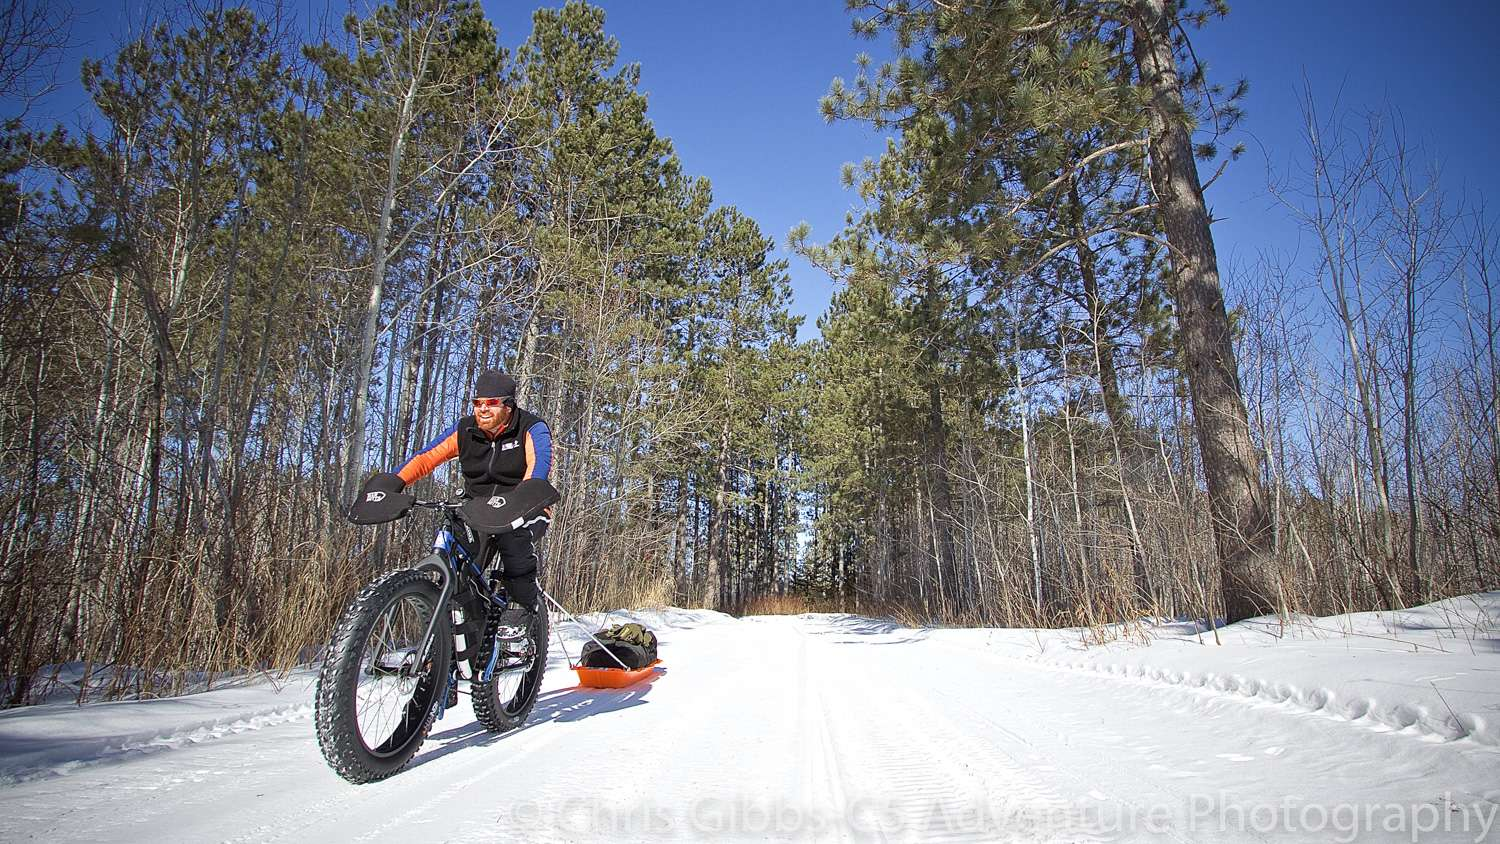 Pulling a sled with a fatbike in the winter